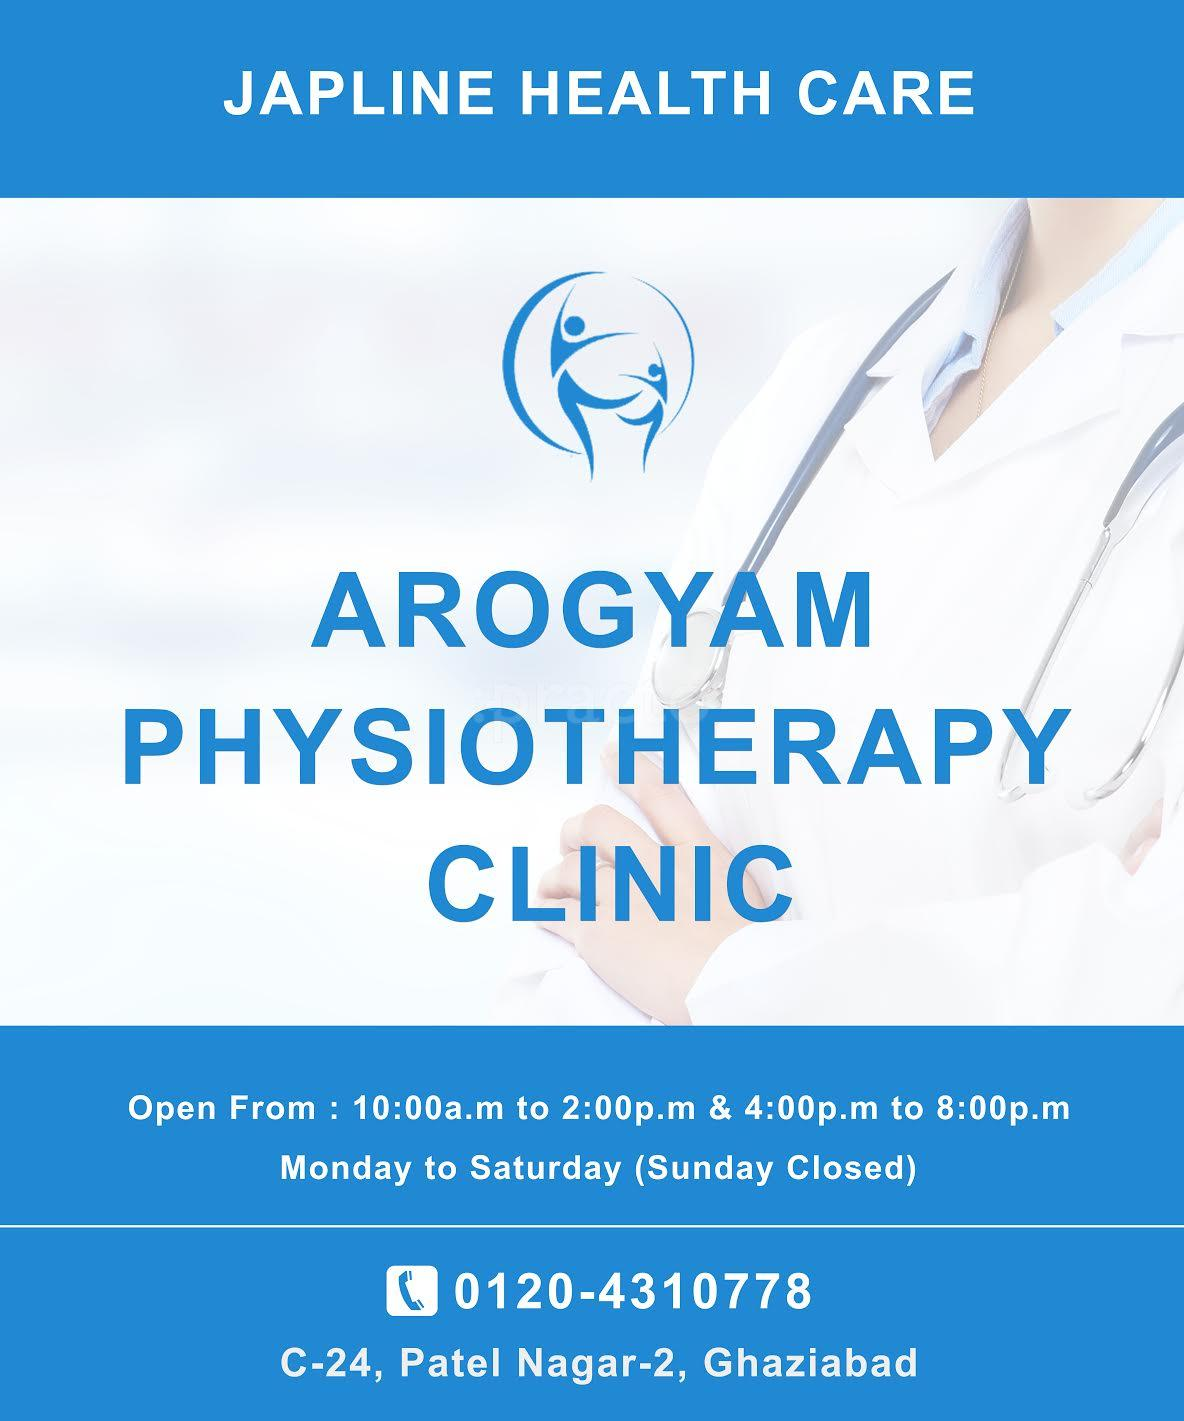 Arogyam Physiotherapy Clinic